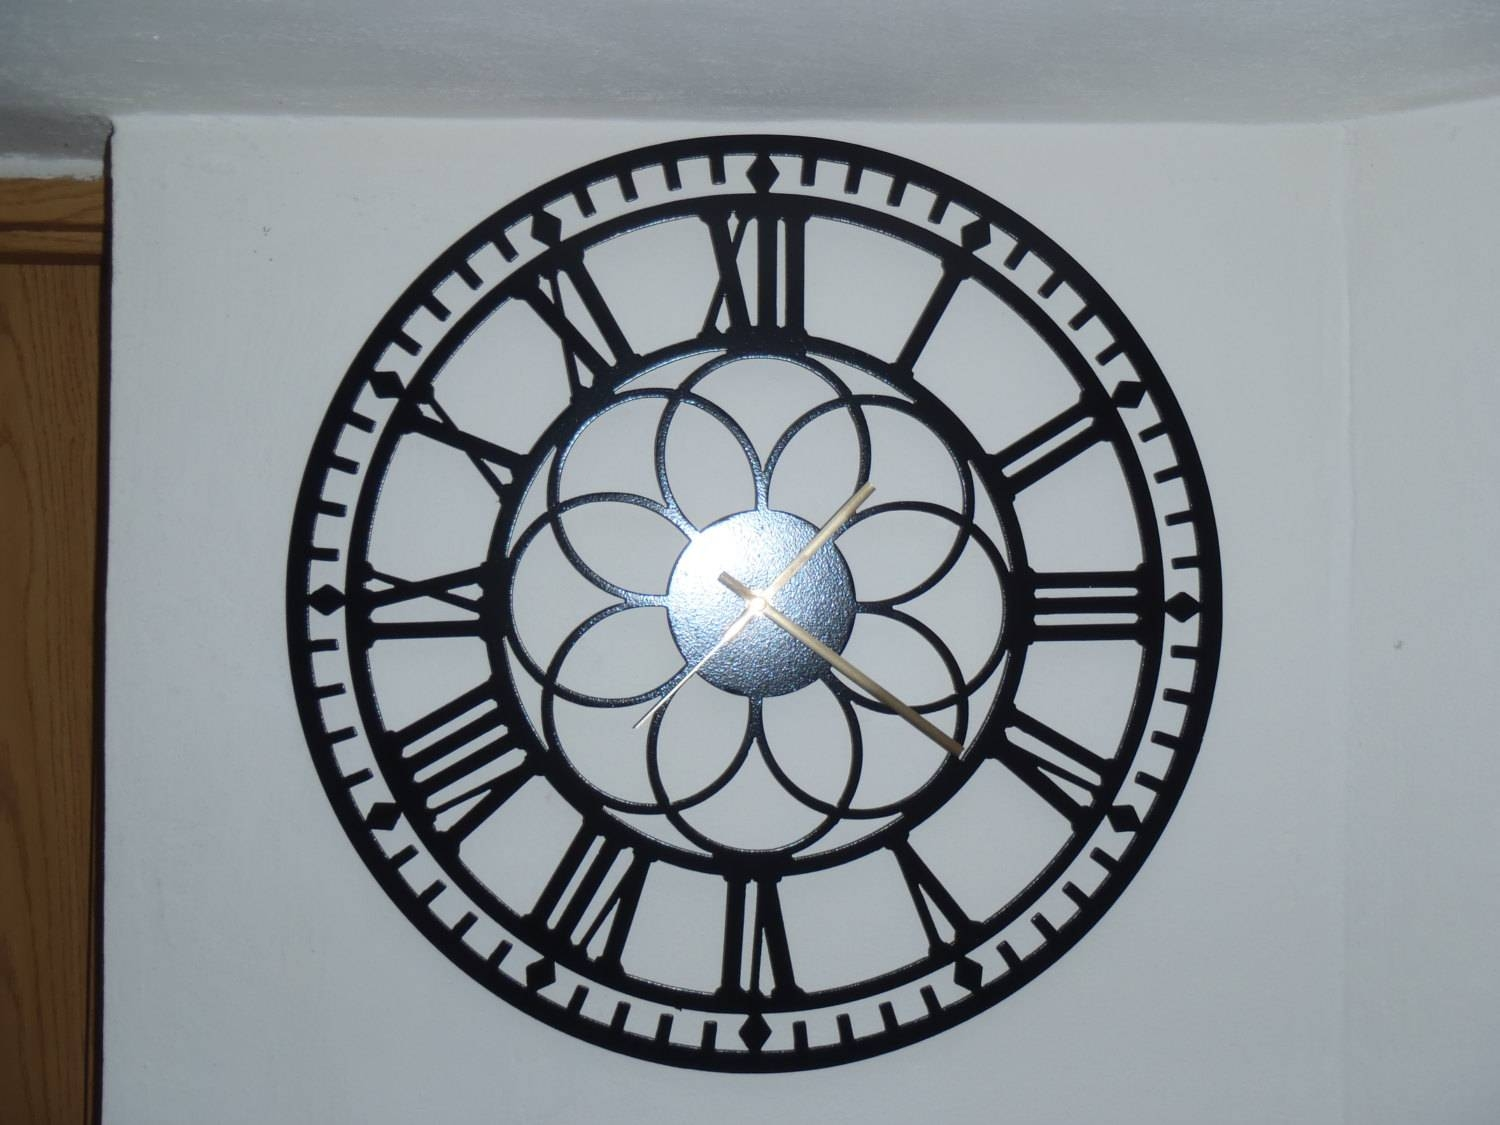 20 Clock Roman Numbers Metal Wall Art Black Metal For Best And Newest Black  Metal Wall